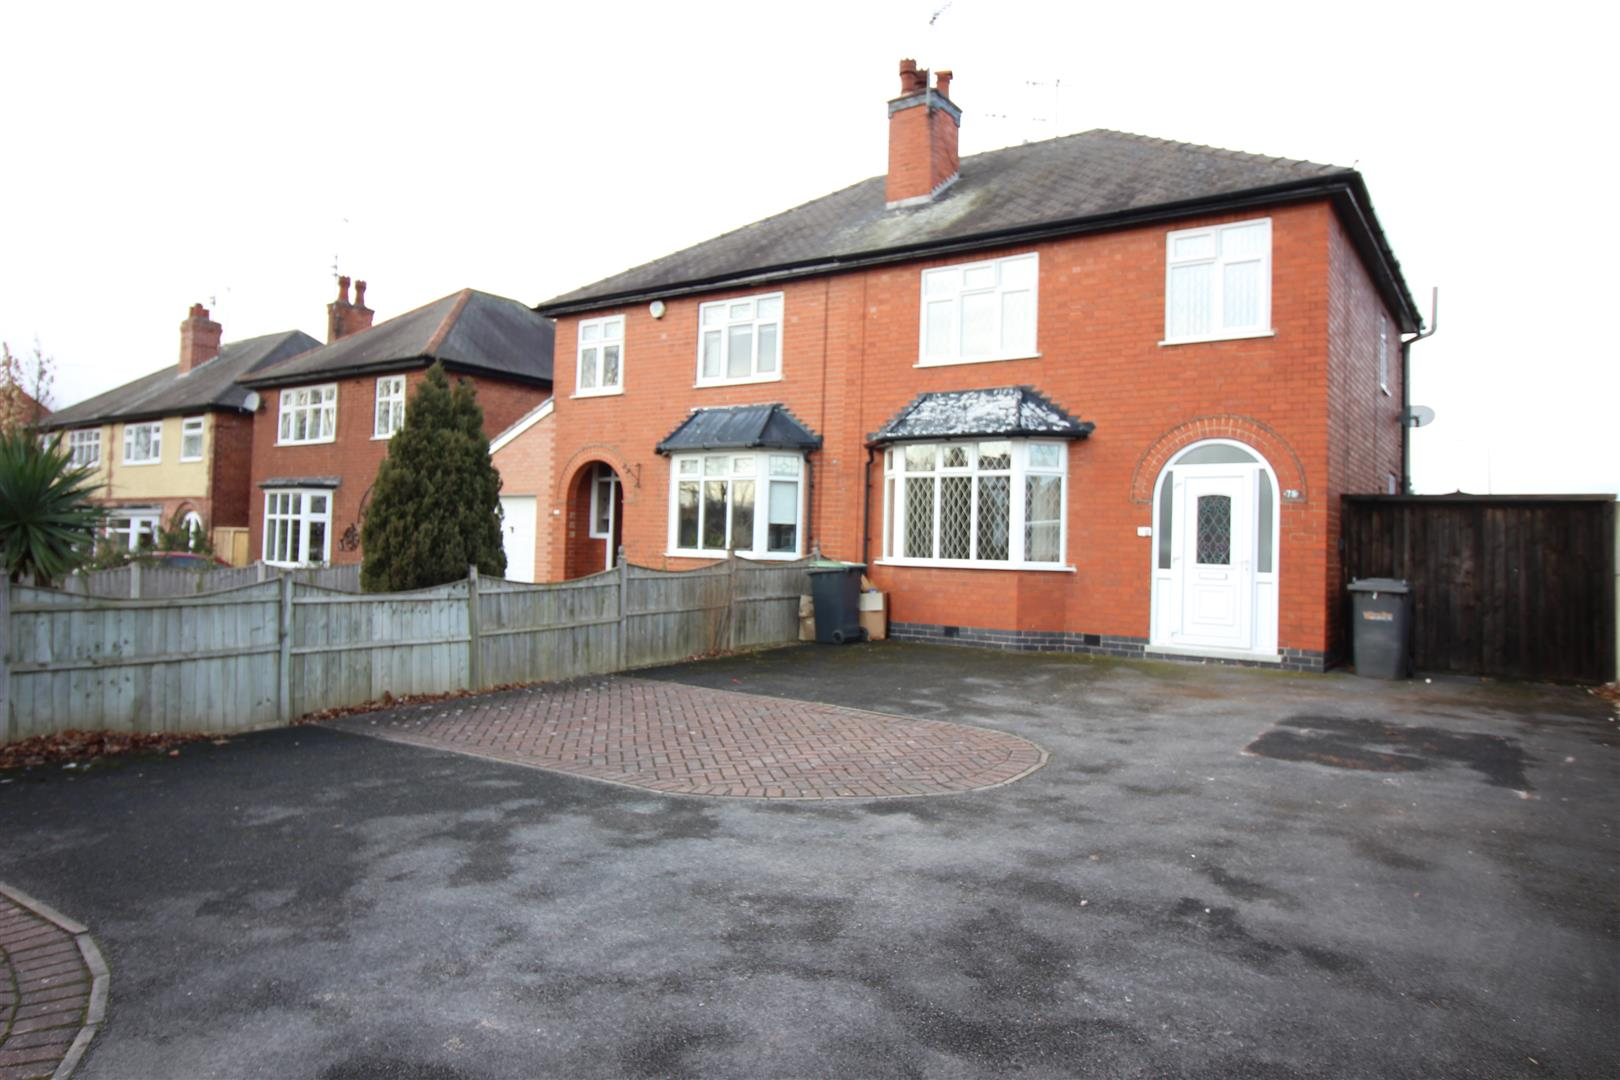 3 Bedrooms Semi Detached House for sale in Hickings Lane, Stapleford, Nottingham